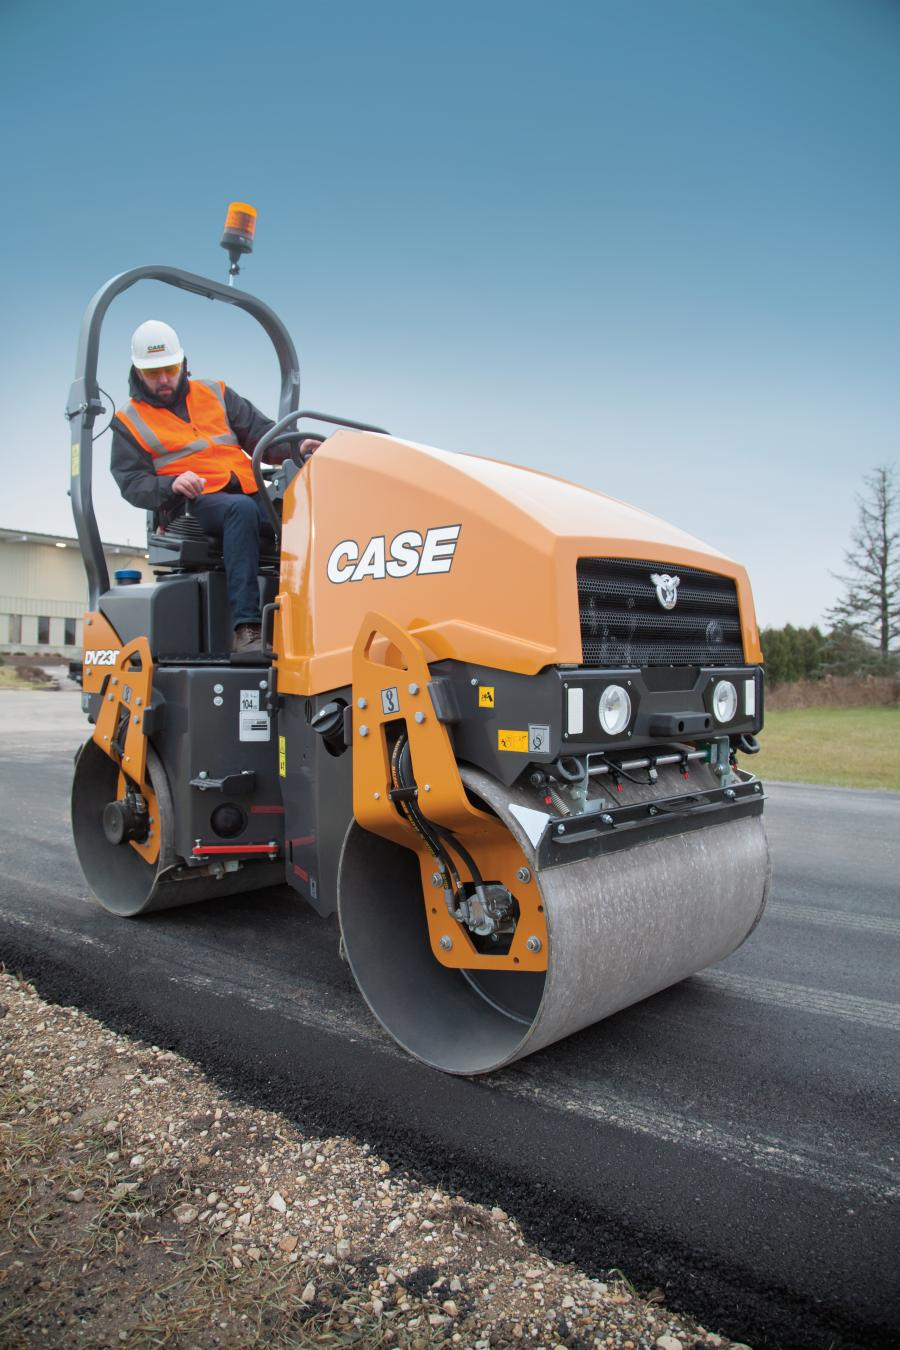 Designed with a high curb clearance, no overhangs andanarrowdrum width of37in.,these compact DV Seriesrollersareideal forwalkways, residential driveways, bike paths, tennis courts, small parking lots and other small- to mid-size compaction applications.